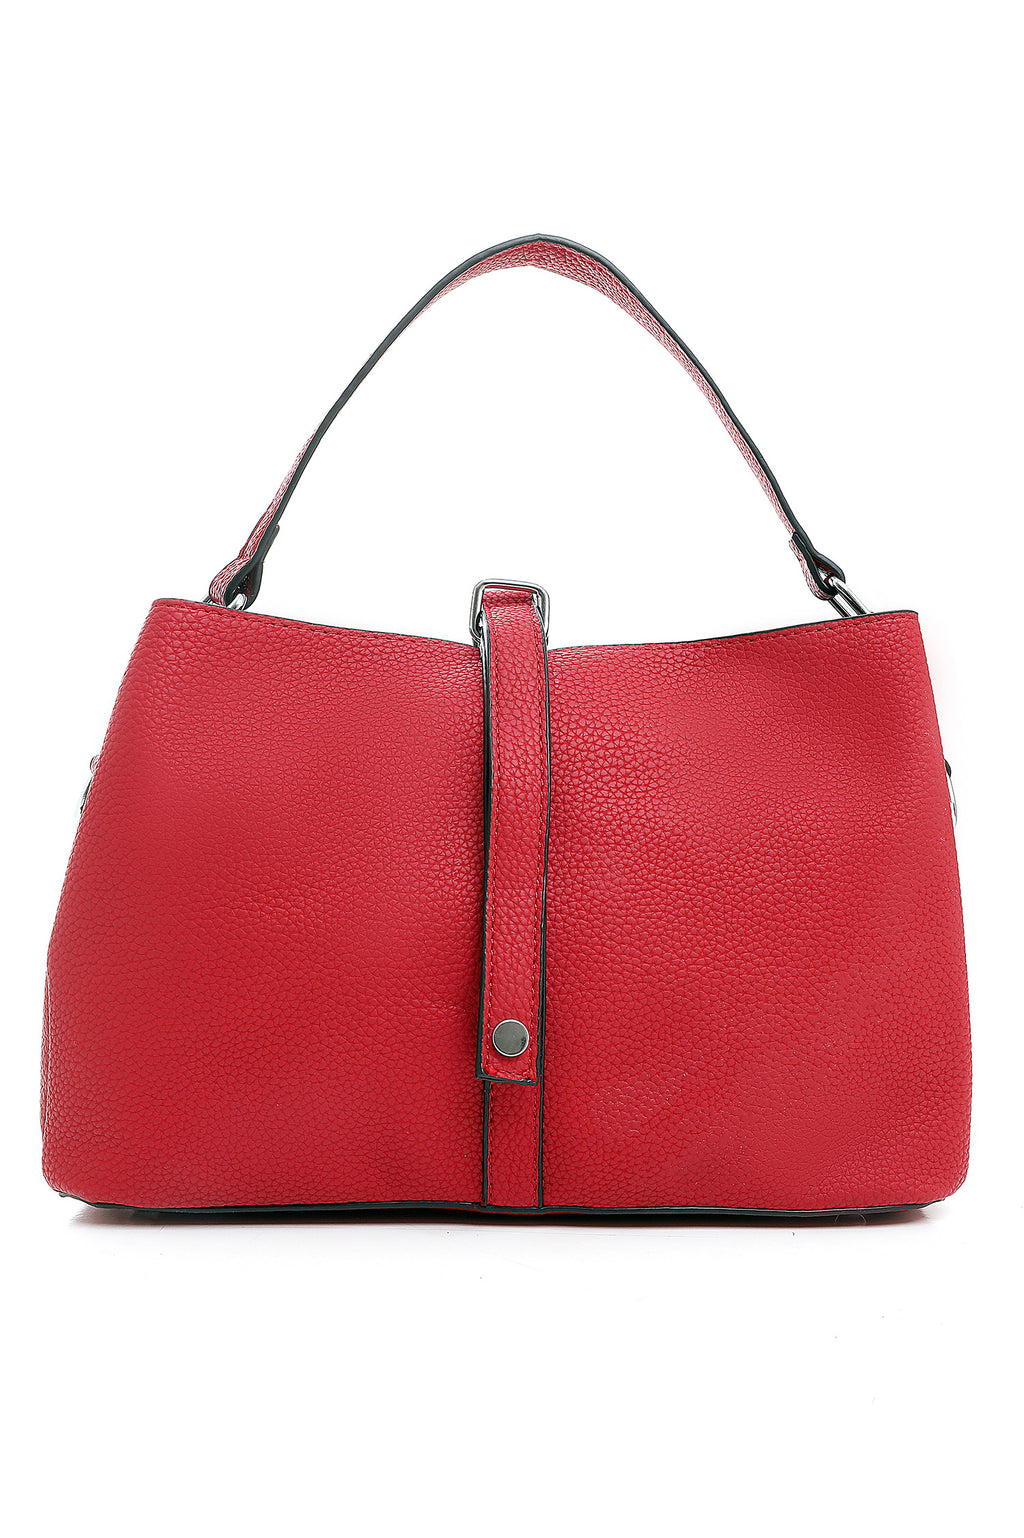 SATCHEL BAG-MAROON